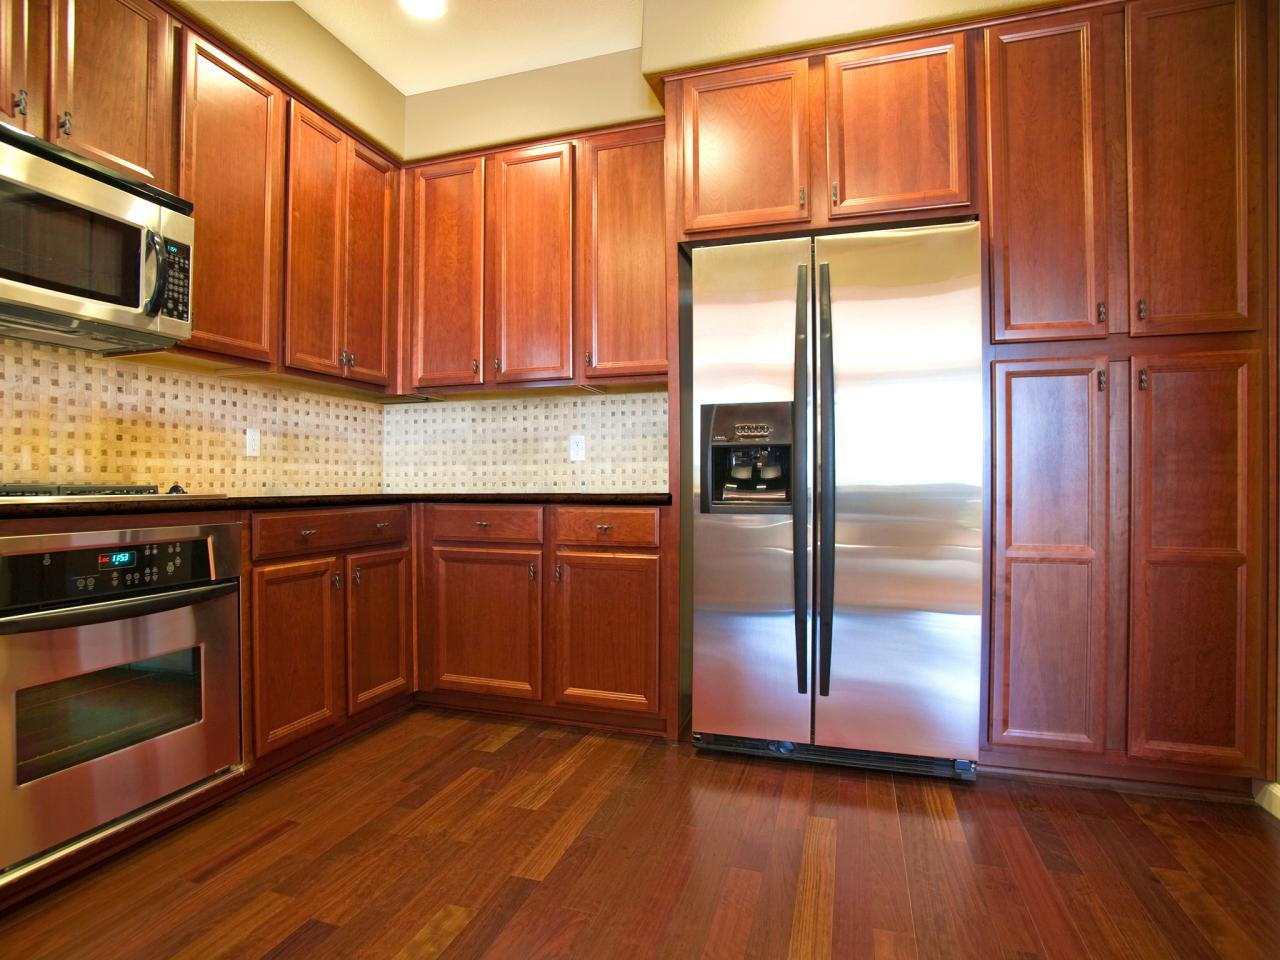 Kitchen Cabinets Design Video Oak Kitchen Cabinets Pictures Ideas And Tips From Hgtv Hgtv